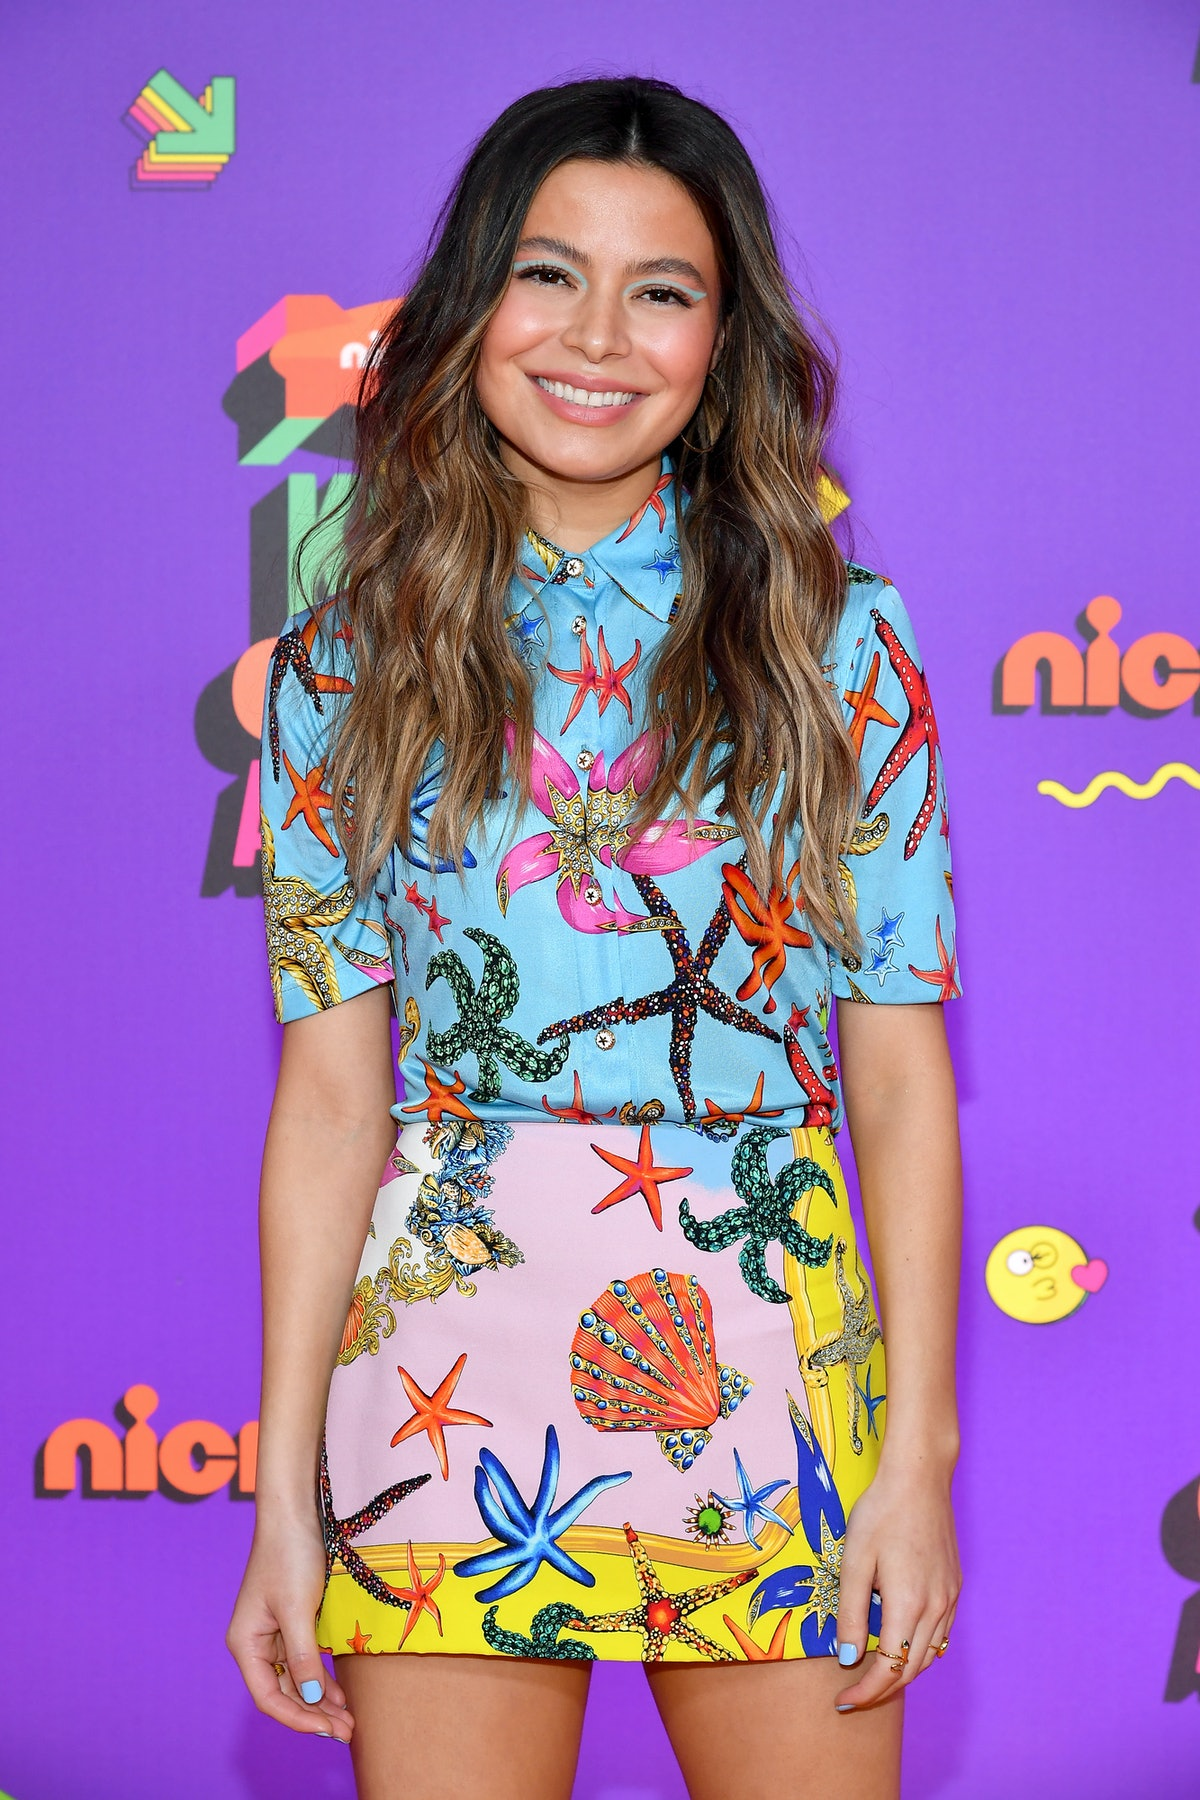 Miranda Cosgrove attends Nickelodeon's Kids' Choice Awards. She'll reprise her role as Carly Shay in the upcoming 'iCarly' revival.